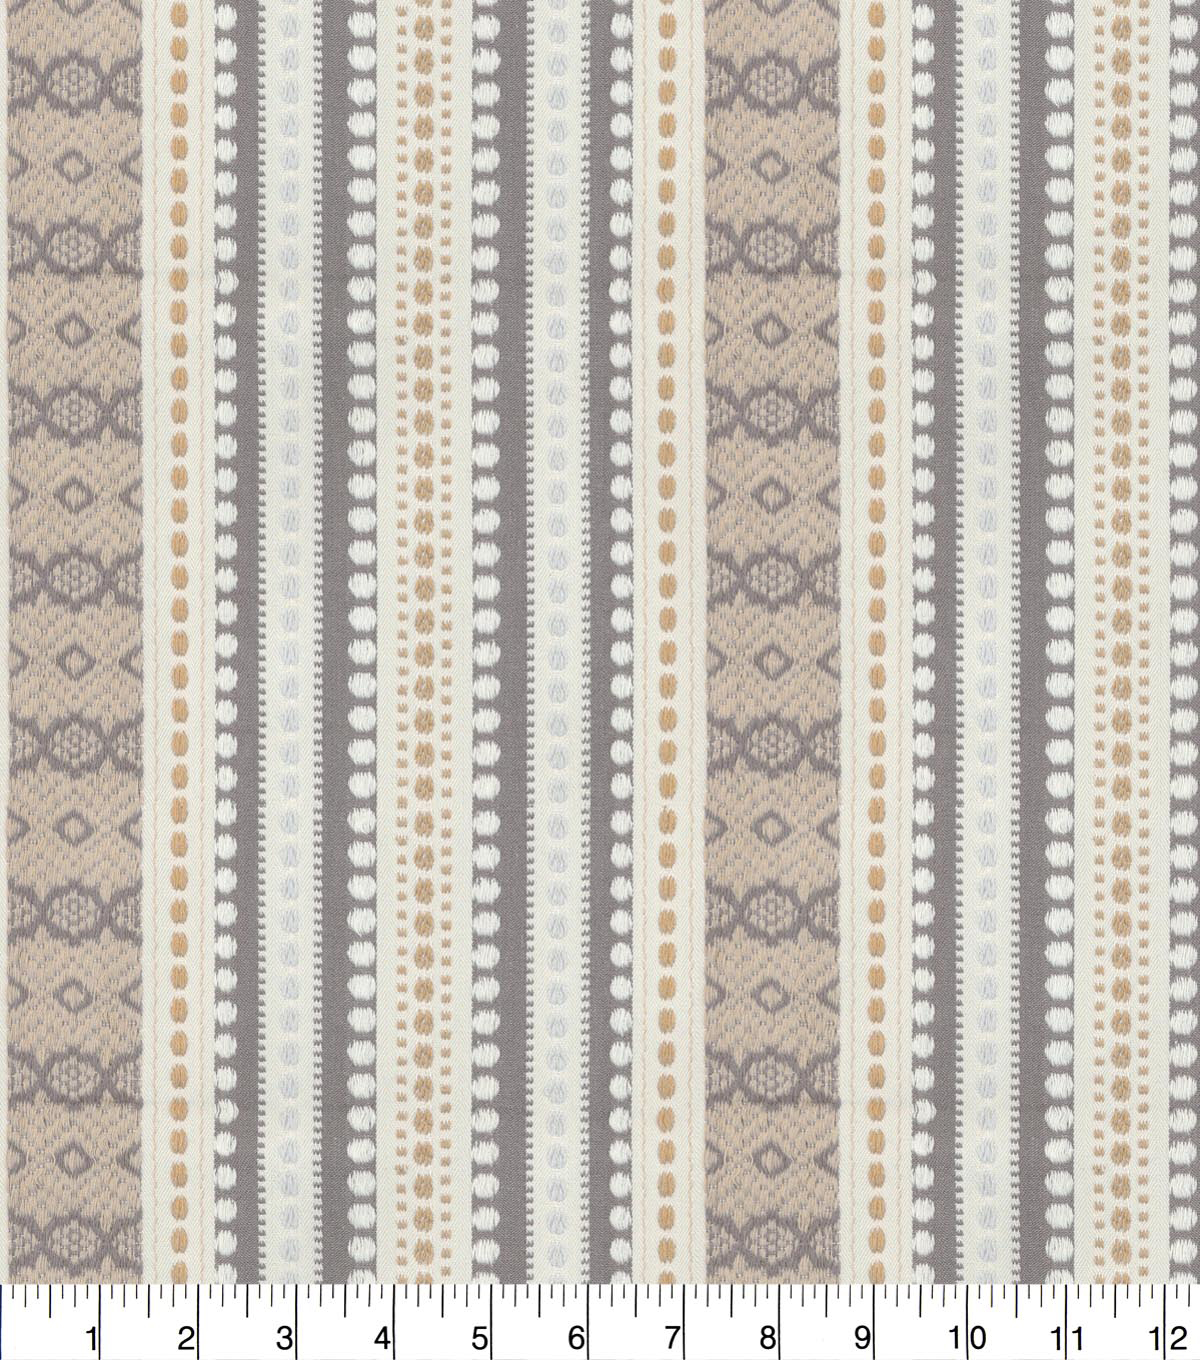 Genevieve Gorder Upholstery Fabric 54\u0027\u0027-Dusk Ancient Stripe